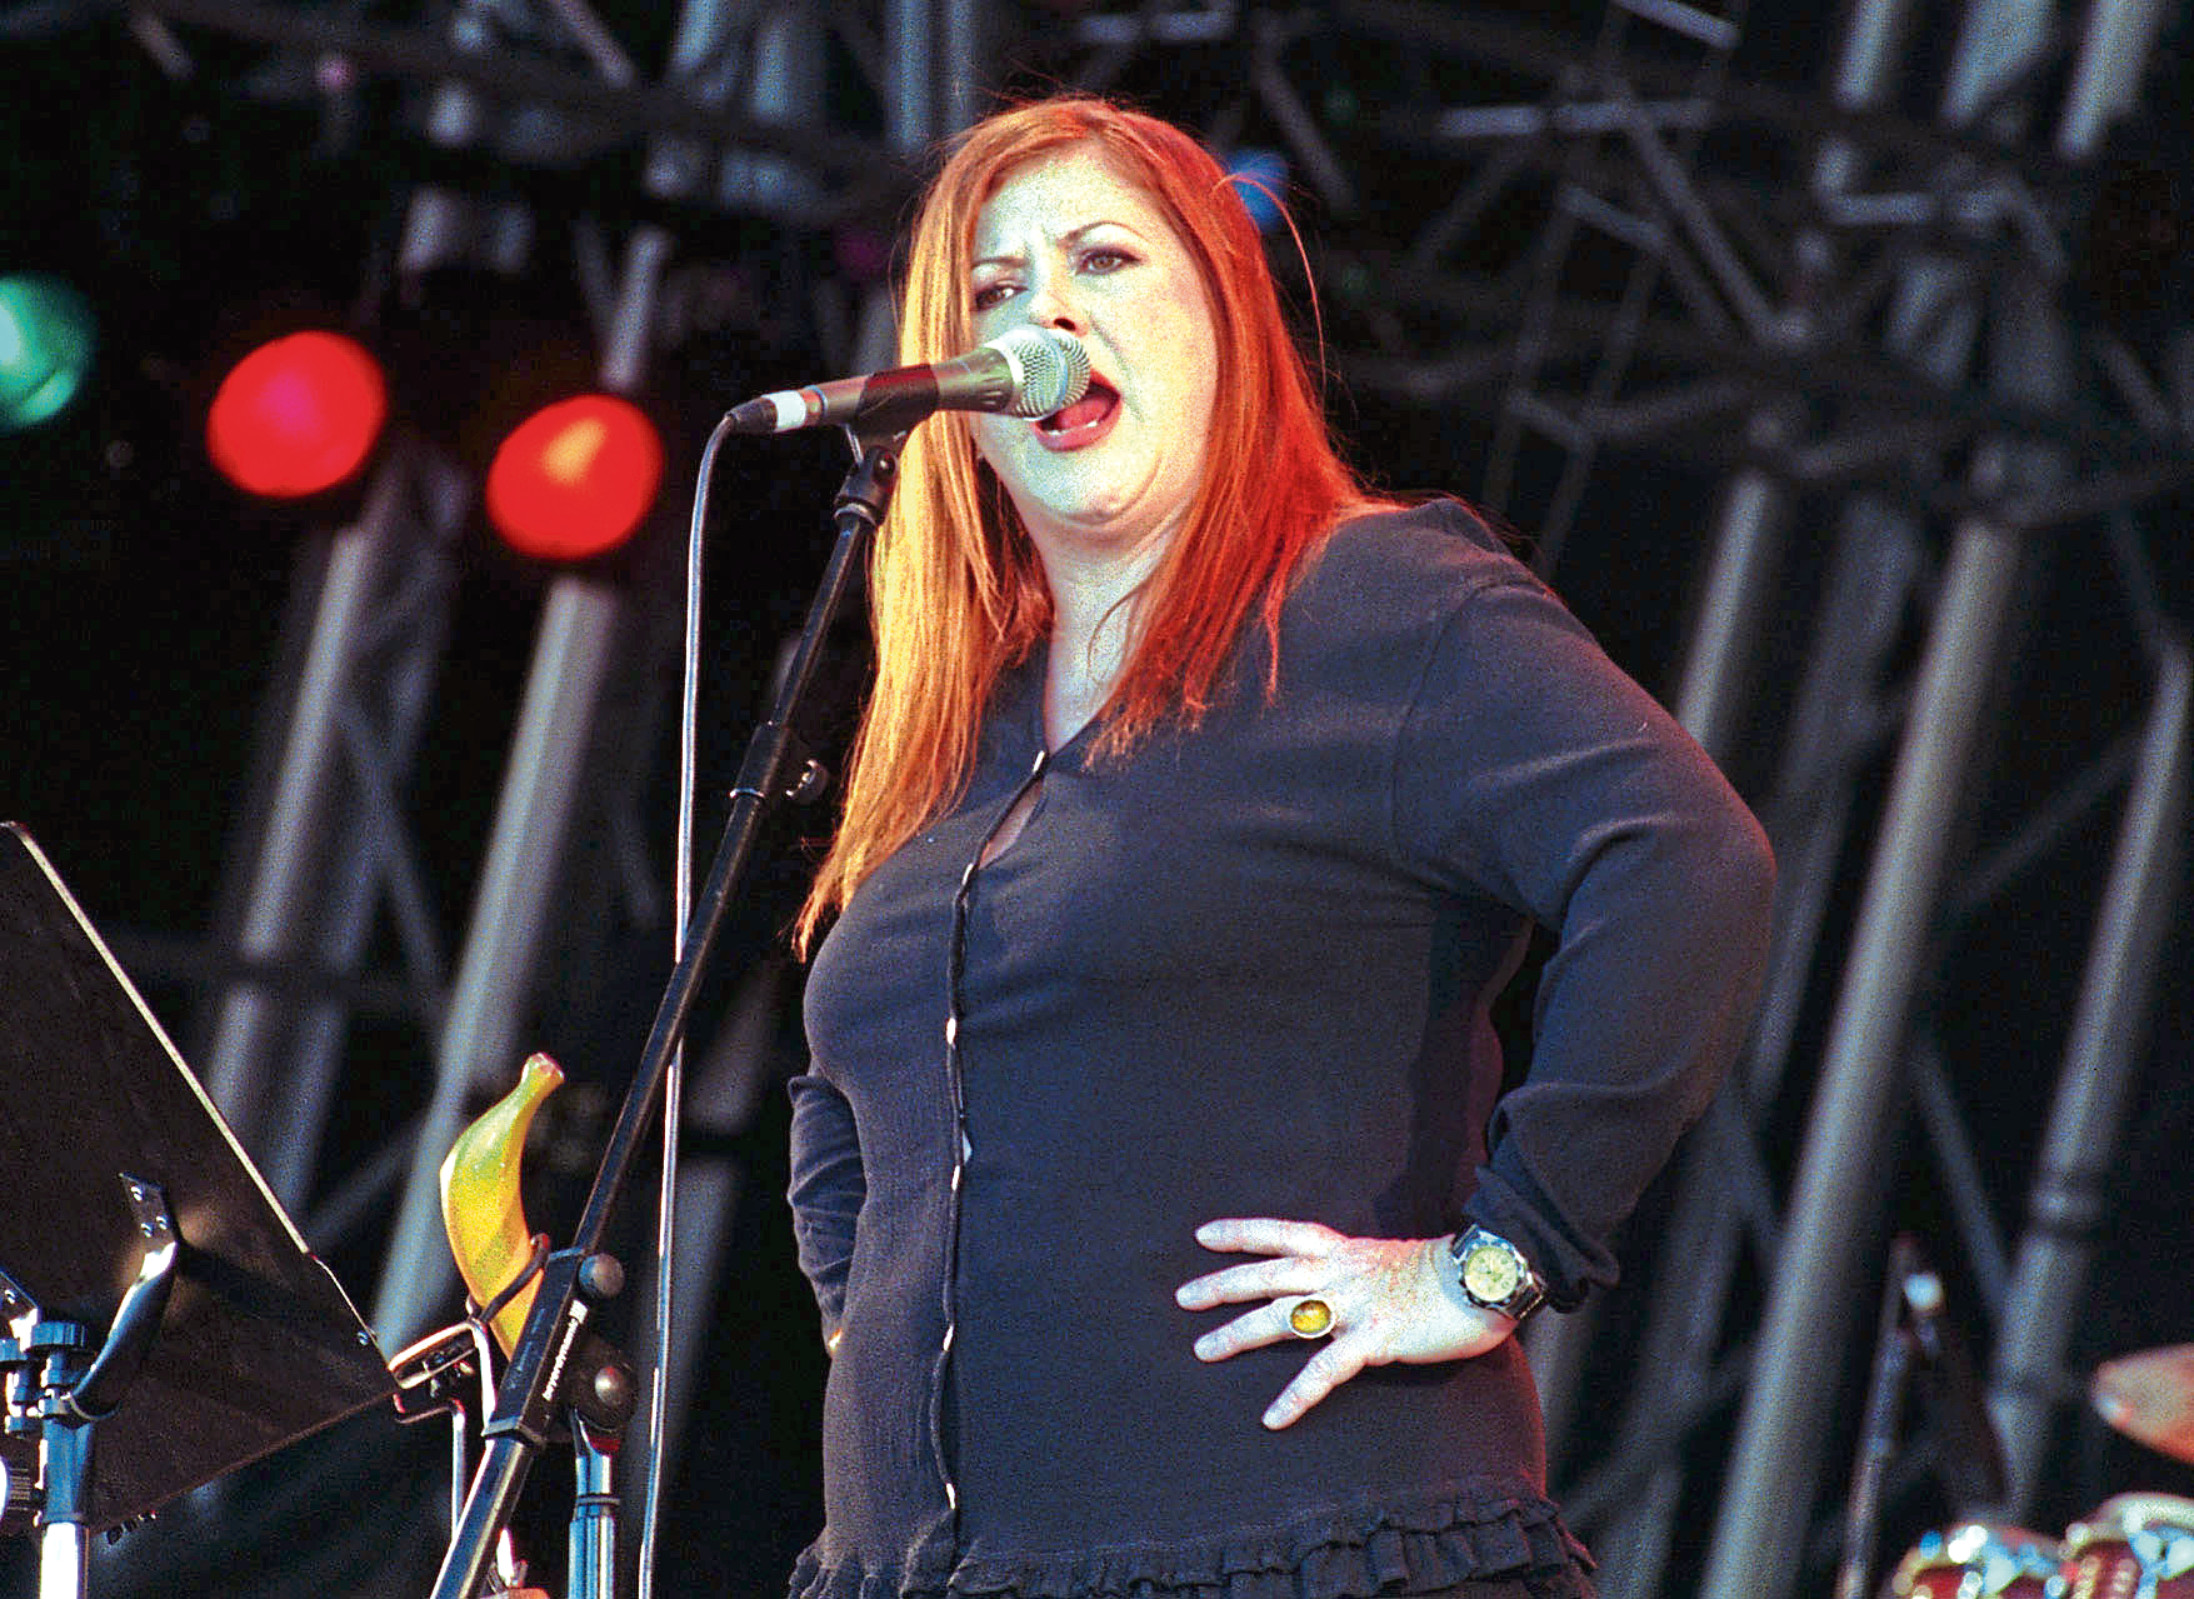 Kirsty MacColl who sang the offending line in Fairytale of New York.